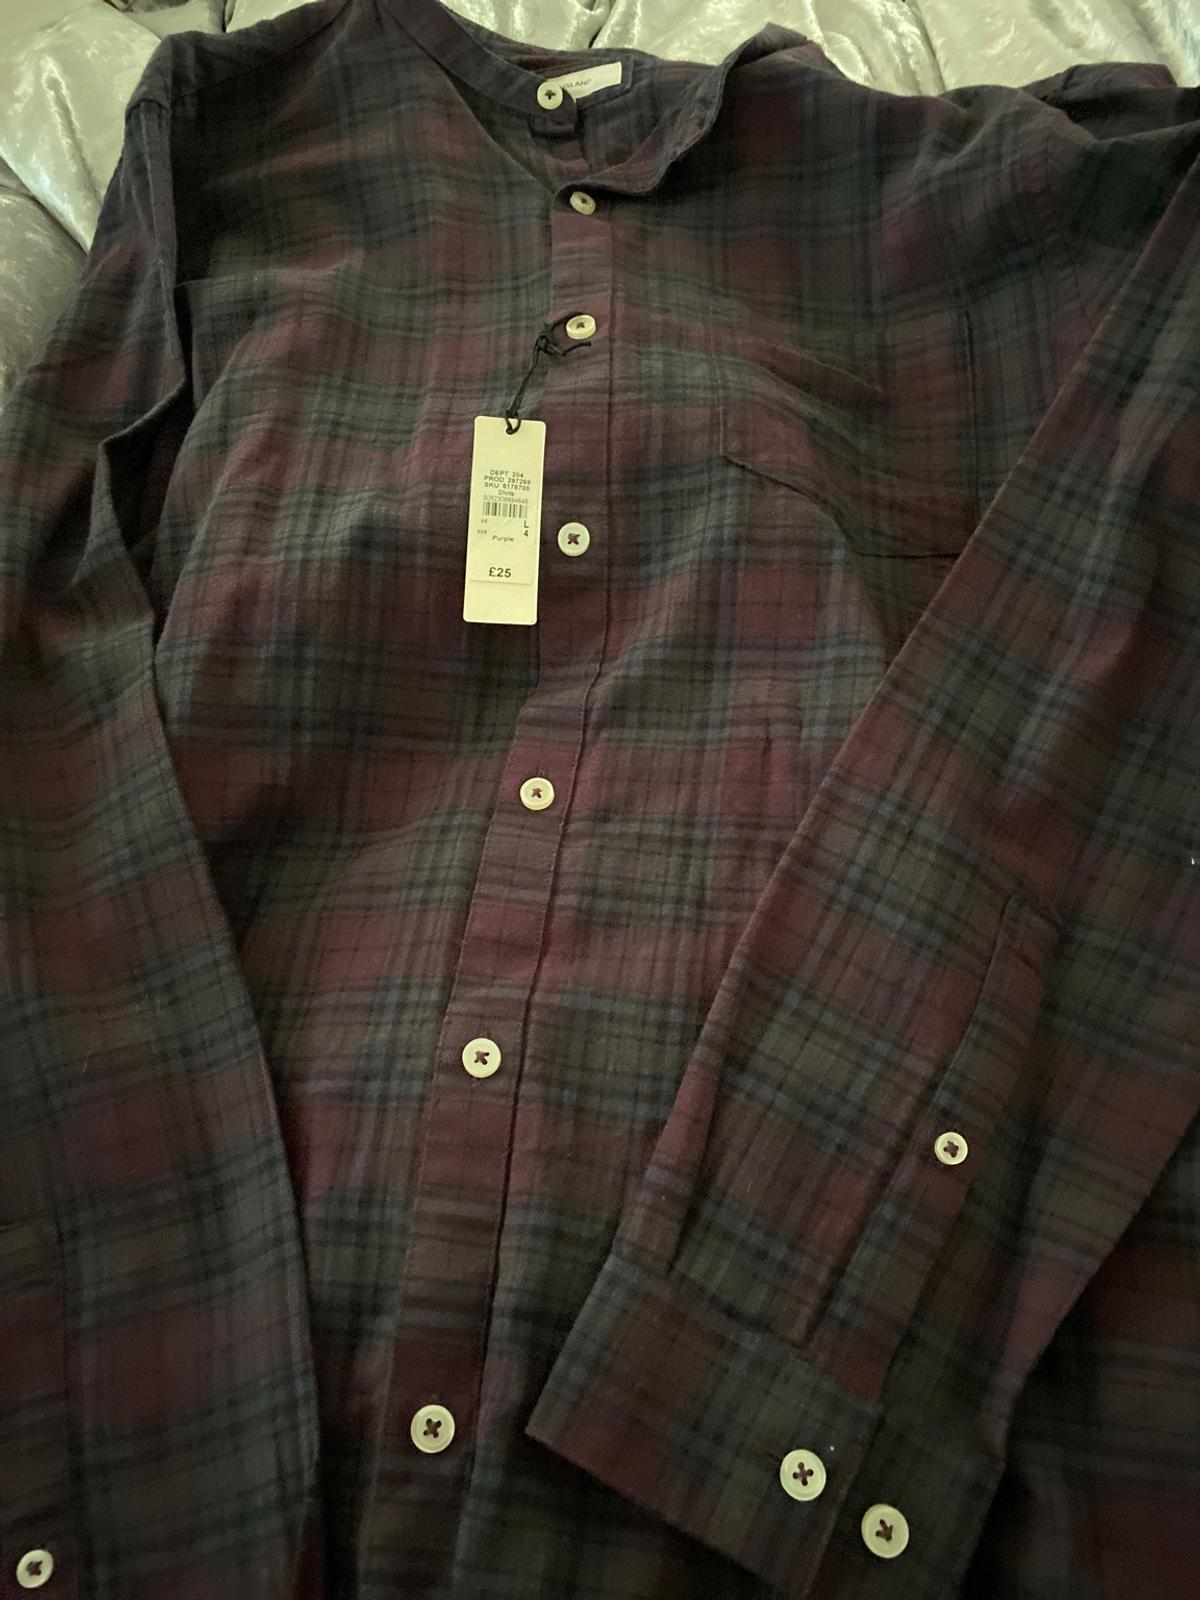 Navy & burgundy shirt brand new with tags in large